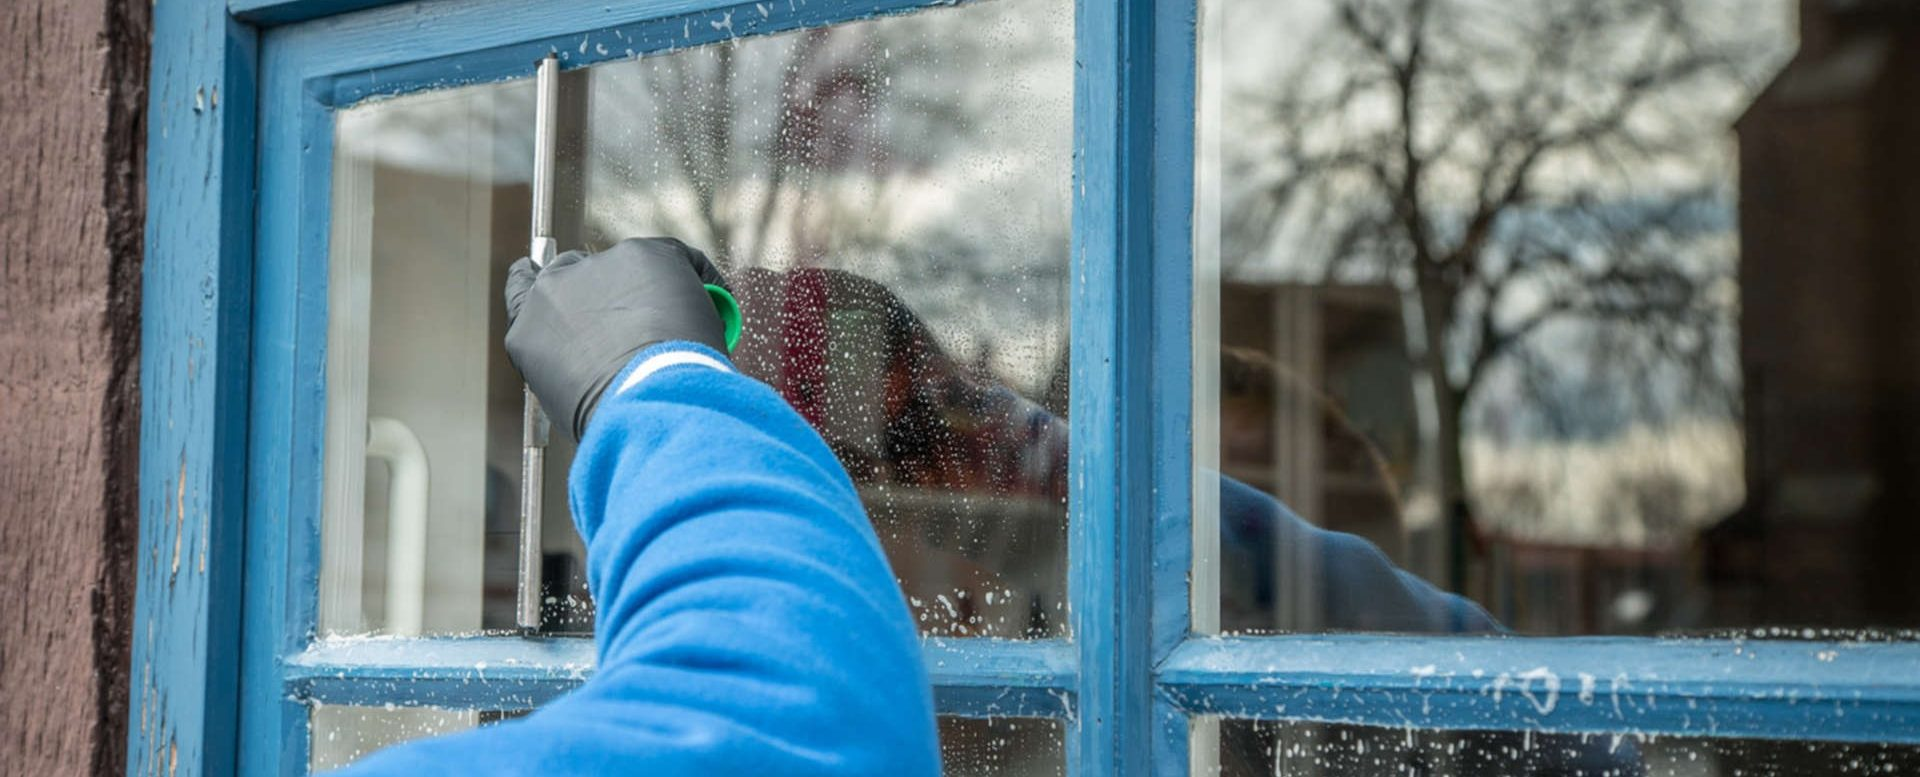 Window cleaning tips and tricks step by step